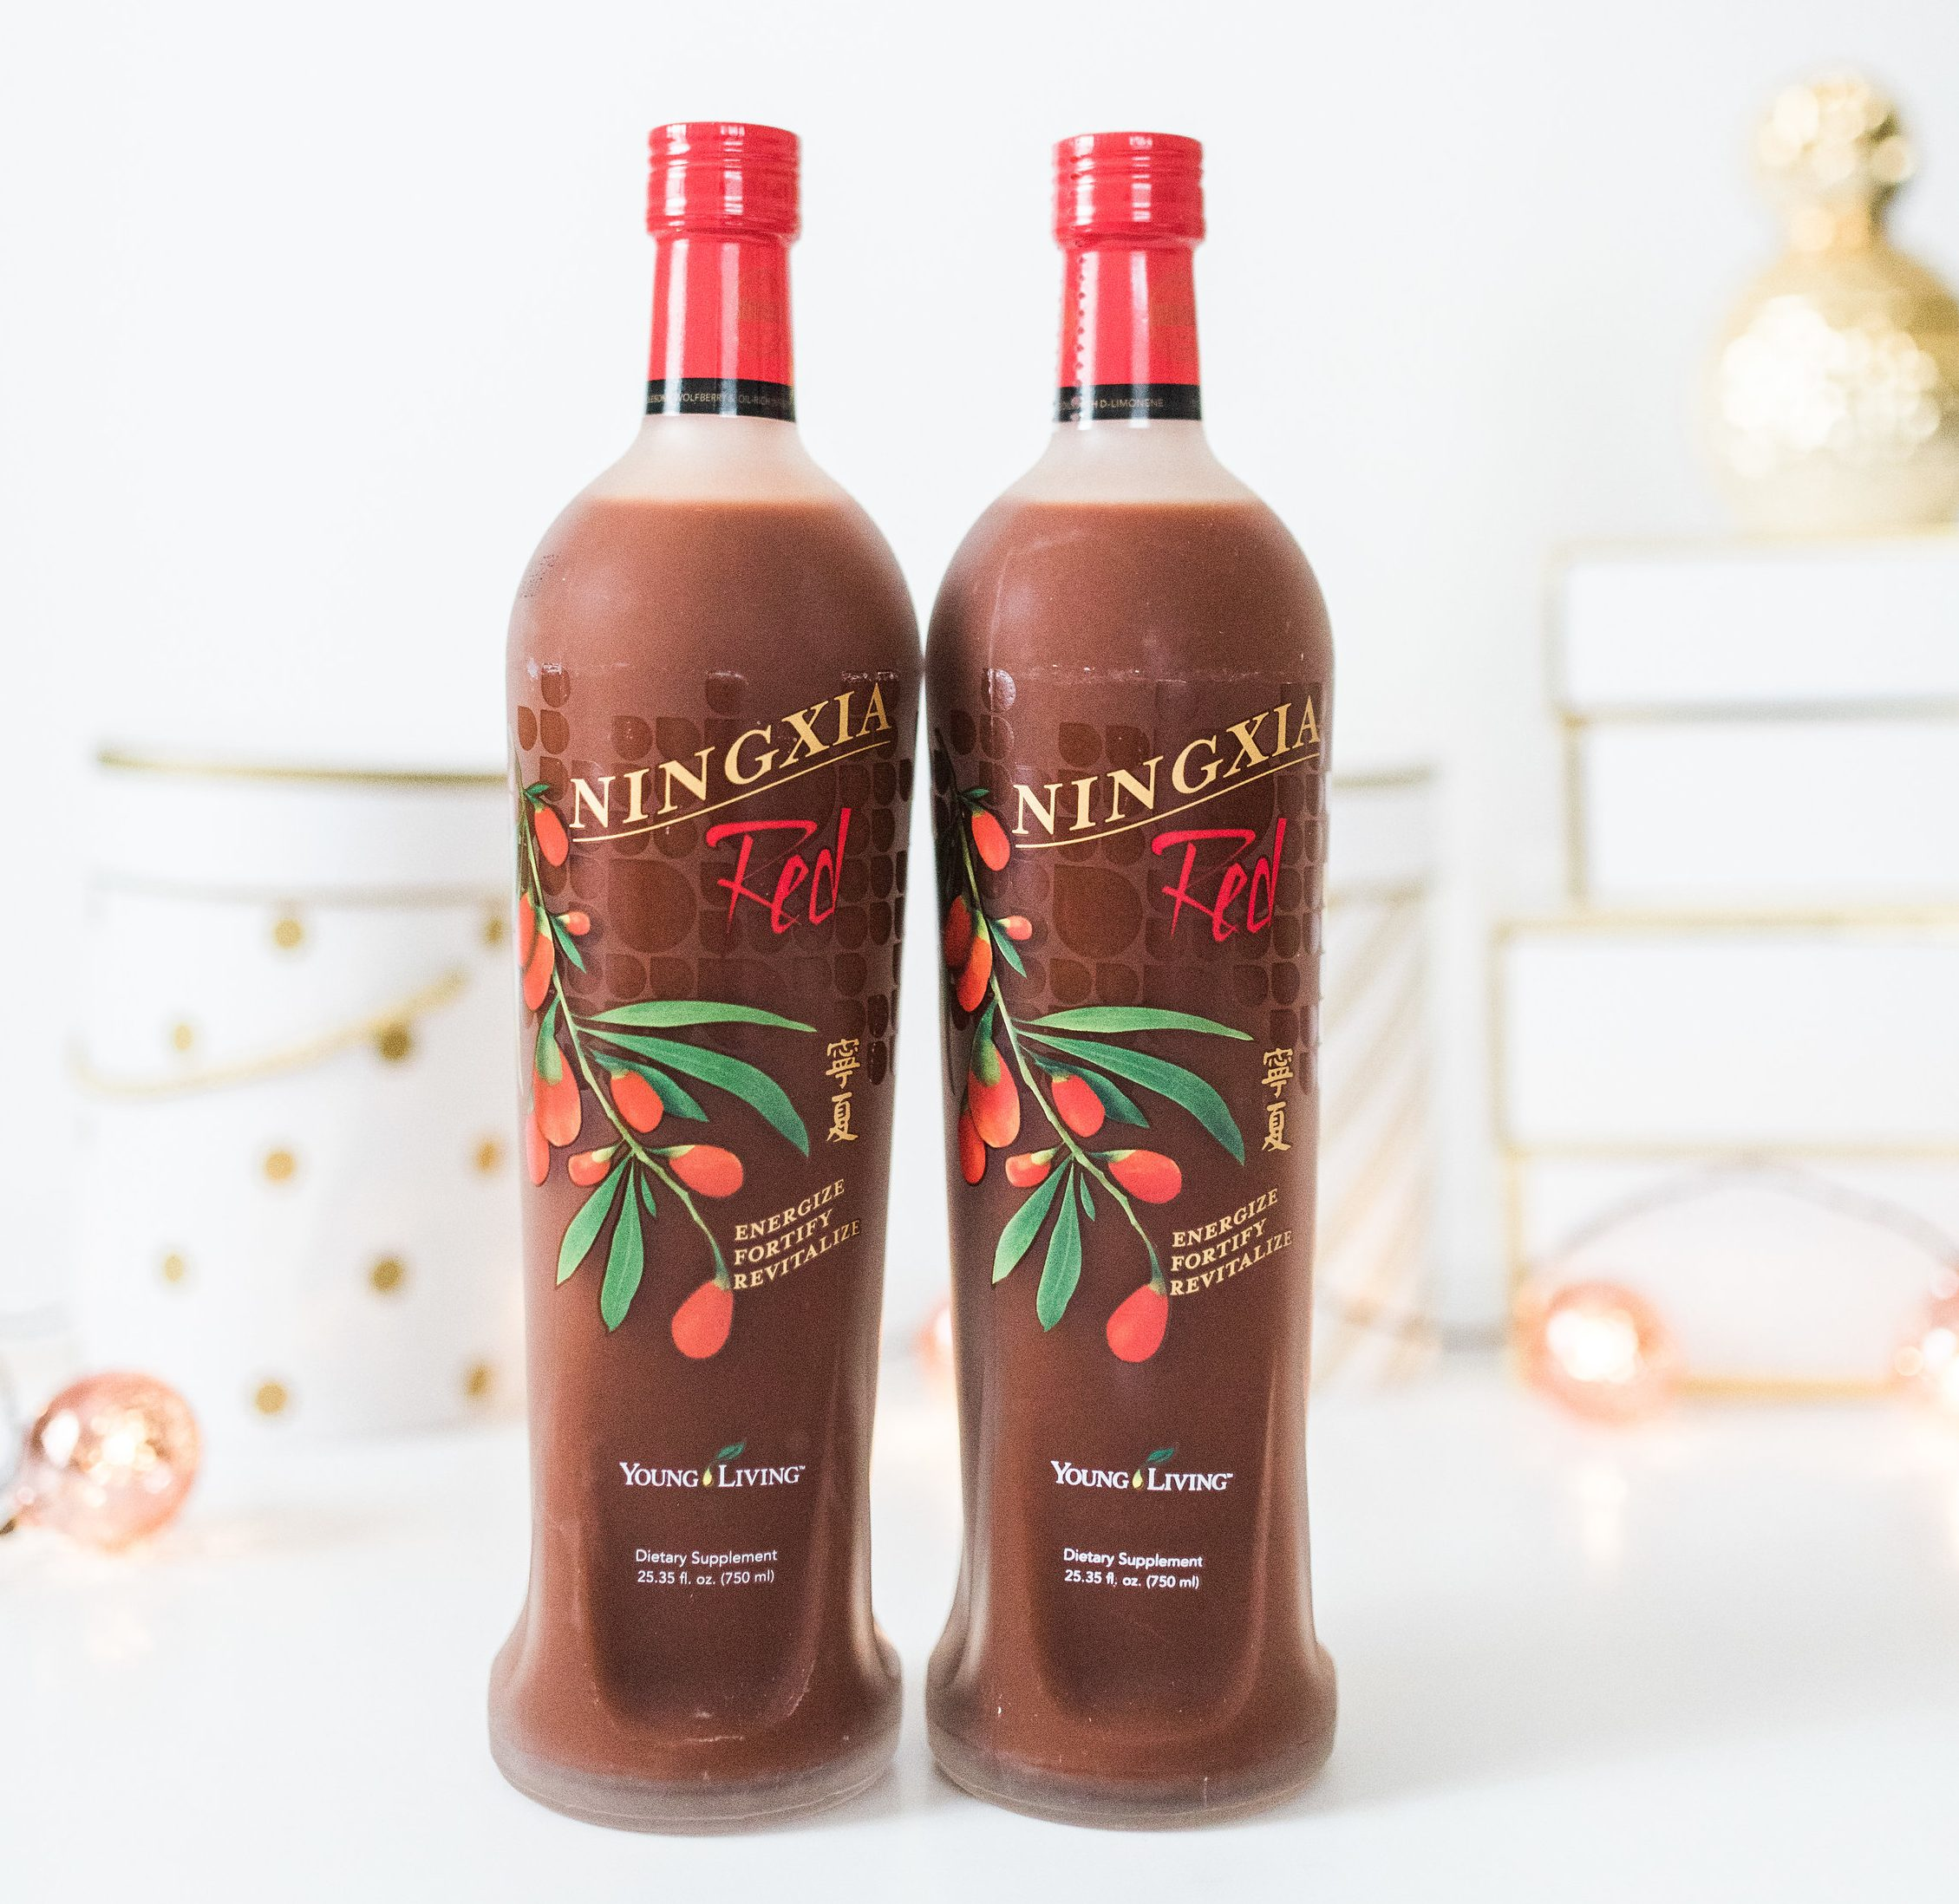 Favourite Chemical Free Products, Ningxia replaced Coffee and energy drinks